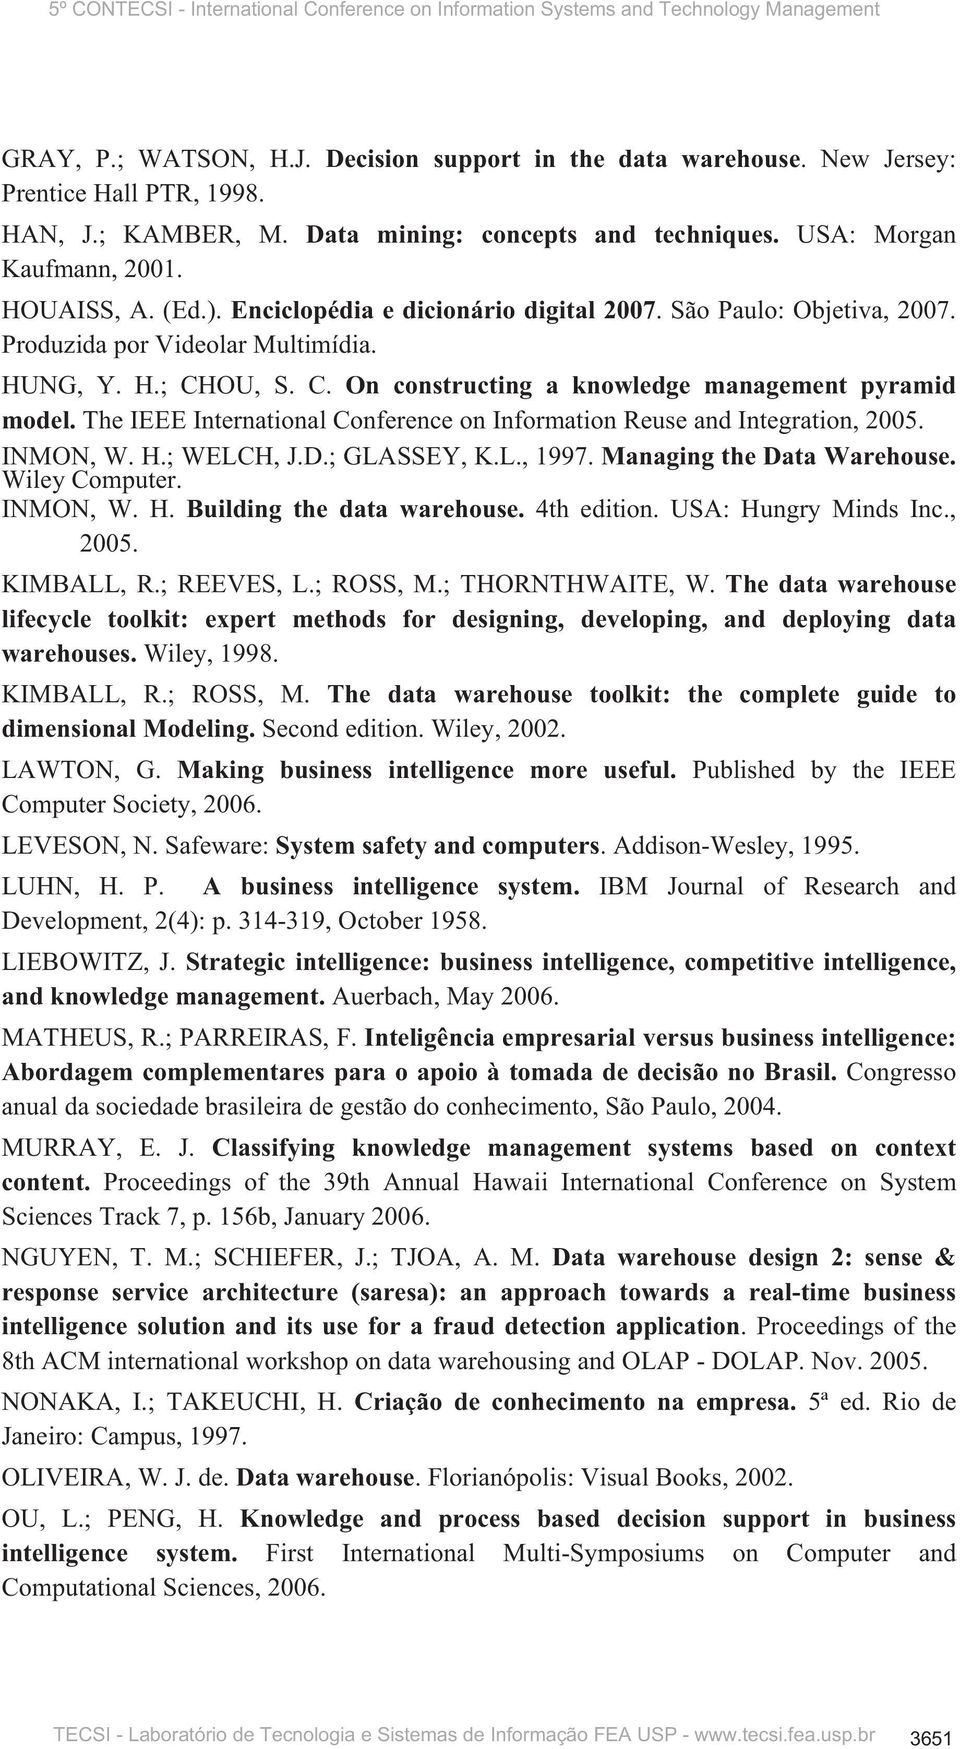 The IEEE International Conference on Information Reuse and Integration, 2005. INMON, W. H.; WELCH, J.D.; GLASSEY, K.L., 1997. Managing the Data Warehouse. Wiley Computer. INMON, W. H. Building the data warehouse.